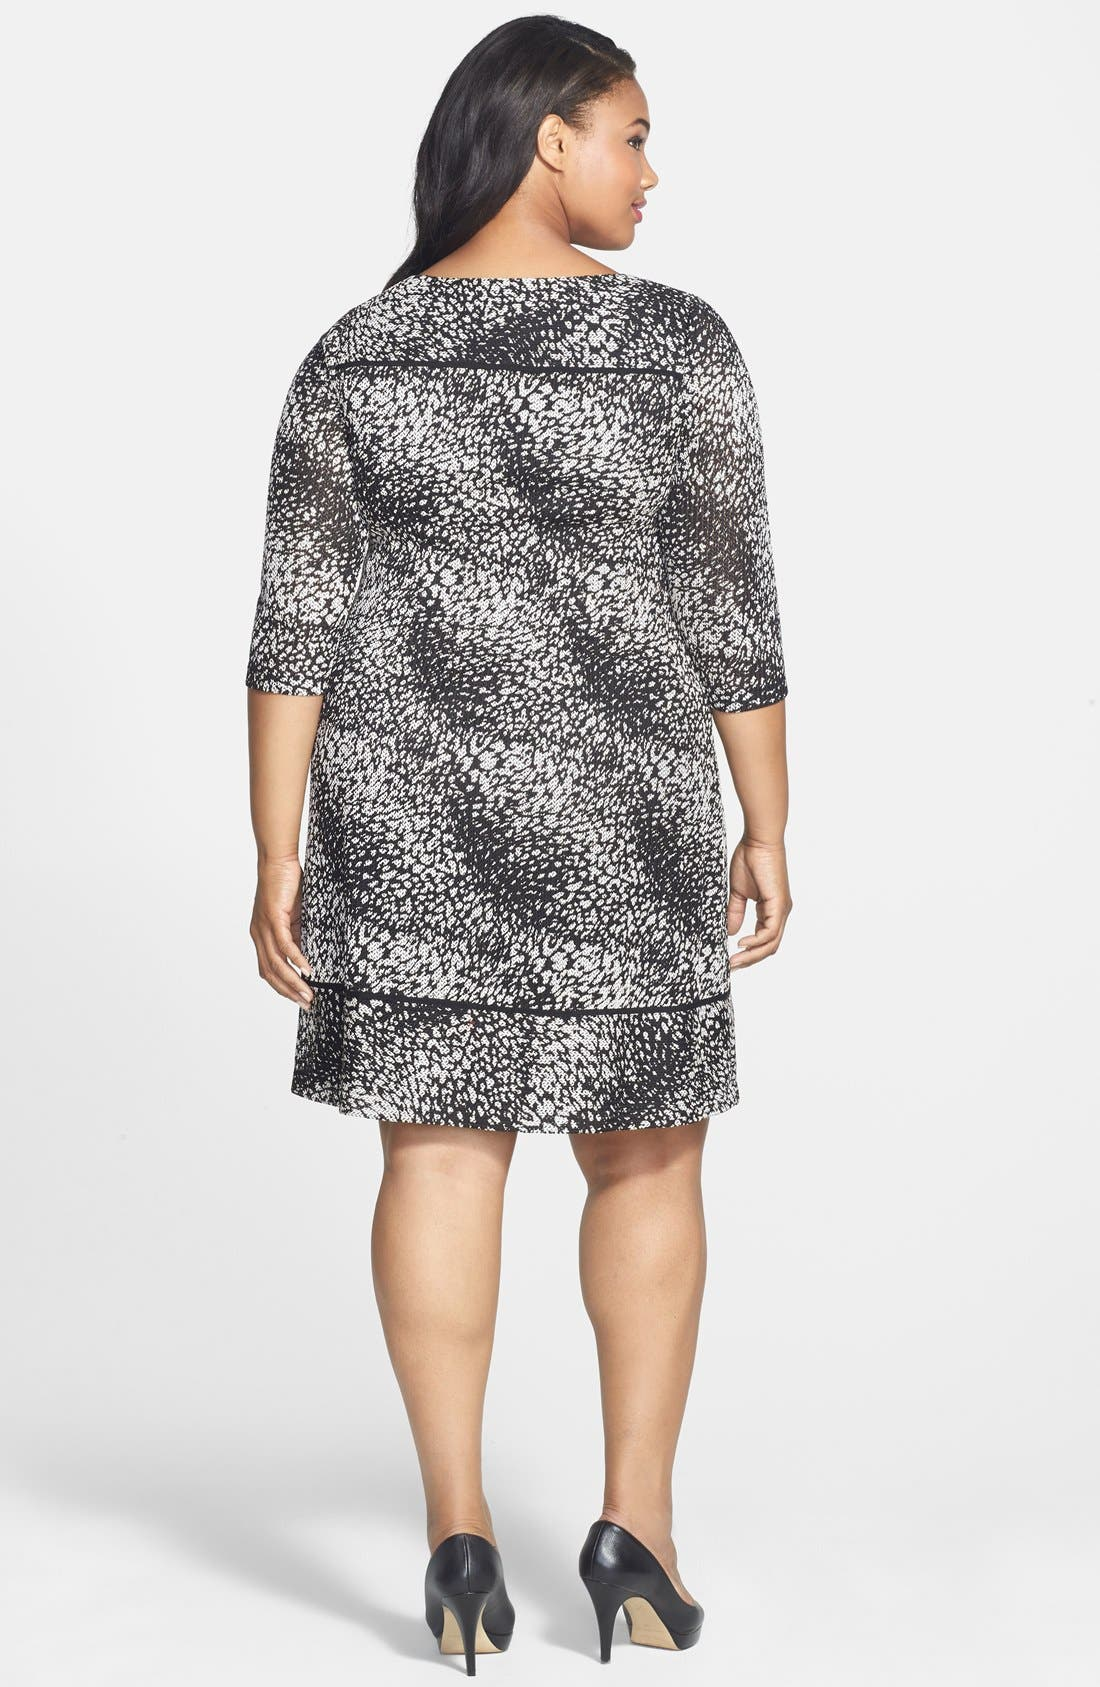 Alternate Image 2  - Adrianna Papell Print Knit Shift Dress (Plus Size)